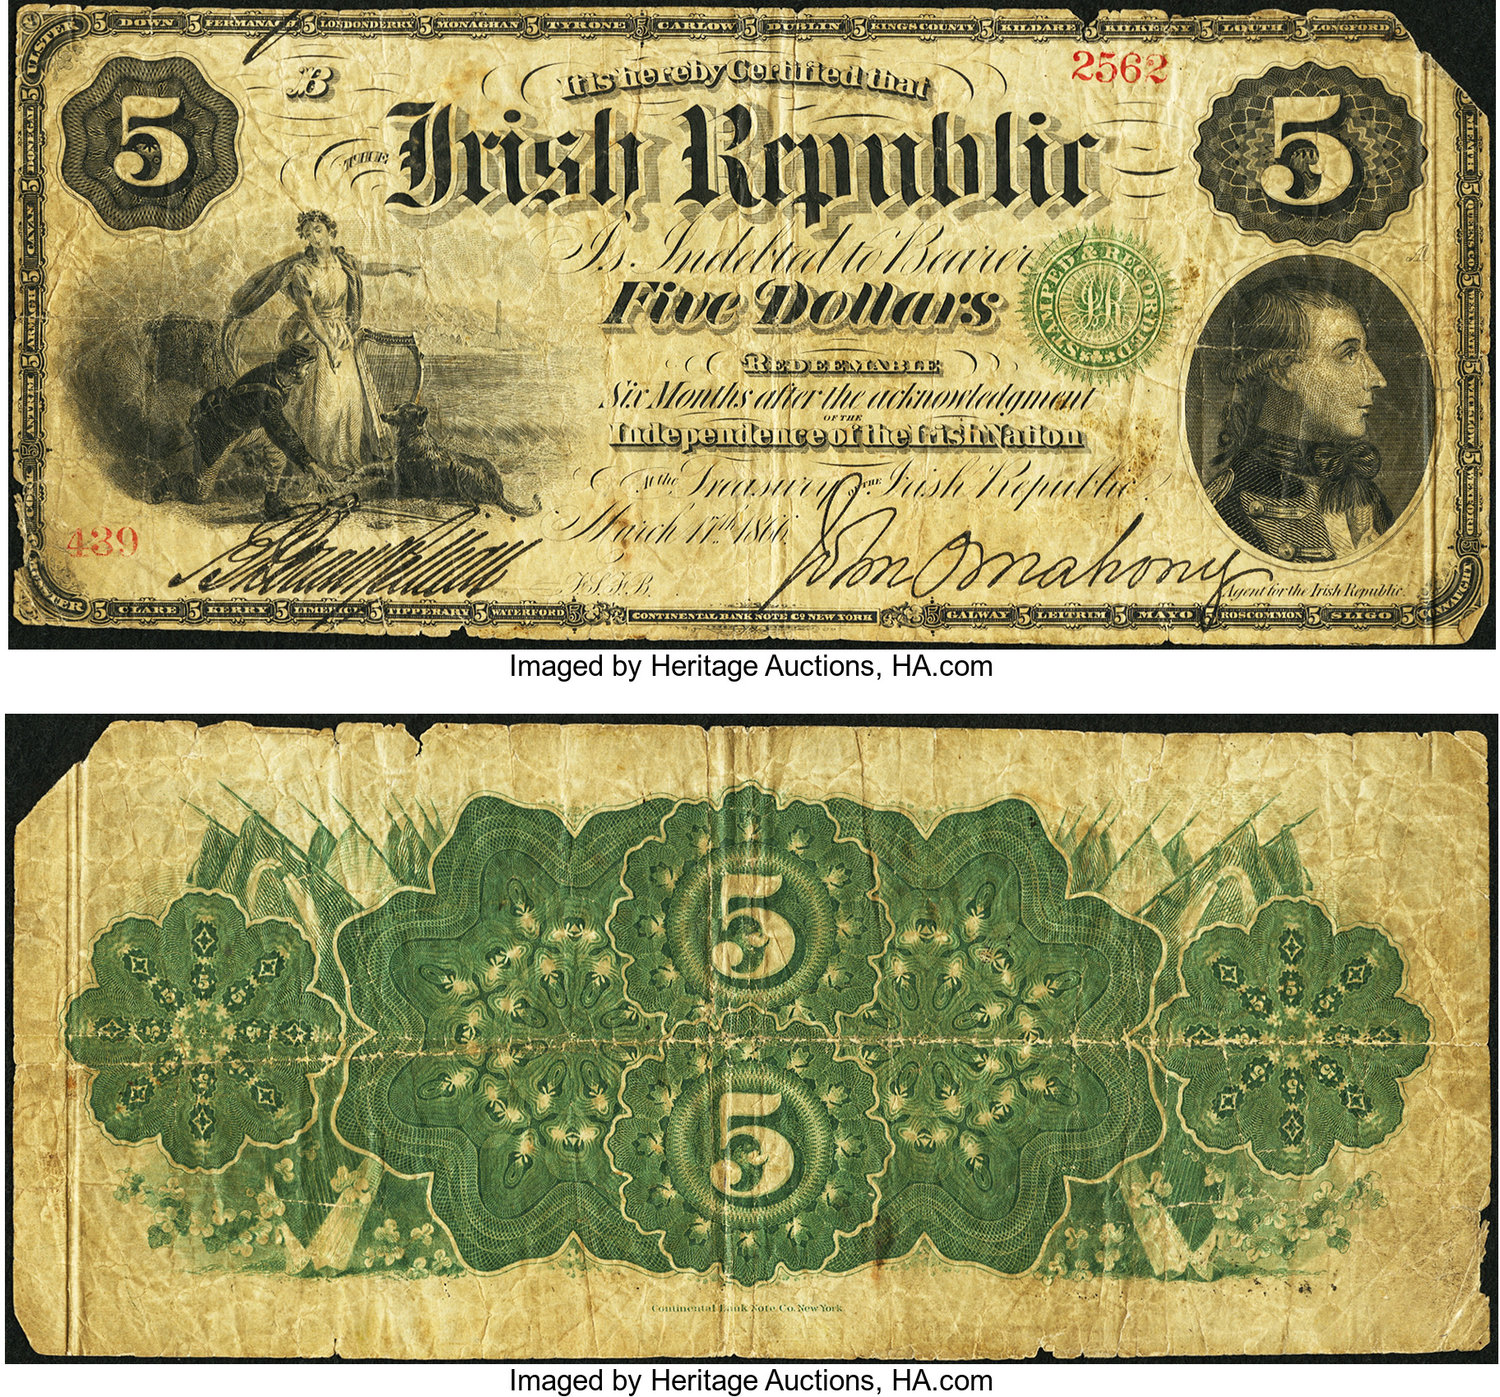 World Currency Ireland Irish Republic 5 3 17 1866 Pick S101 This National Promissory Bond Is Missing Its Upper